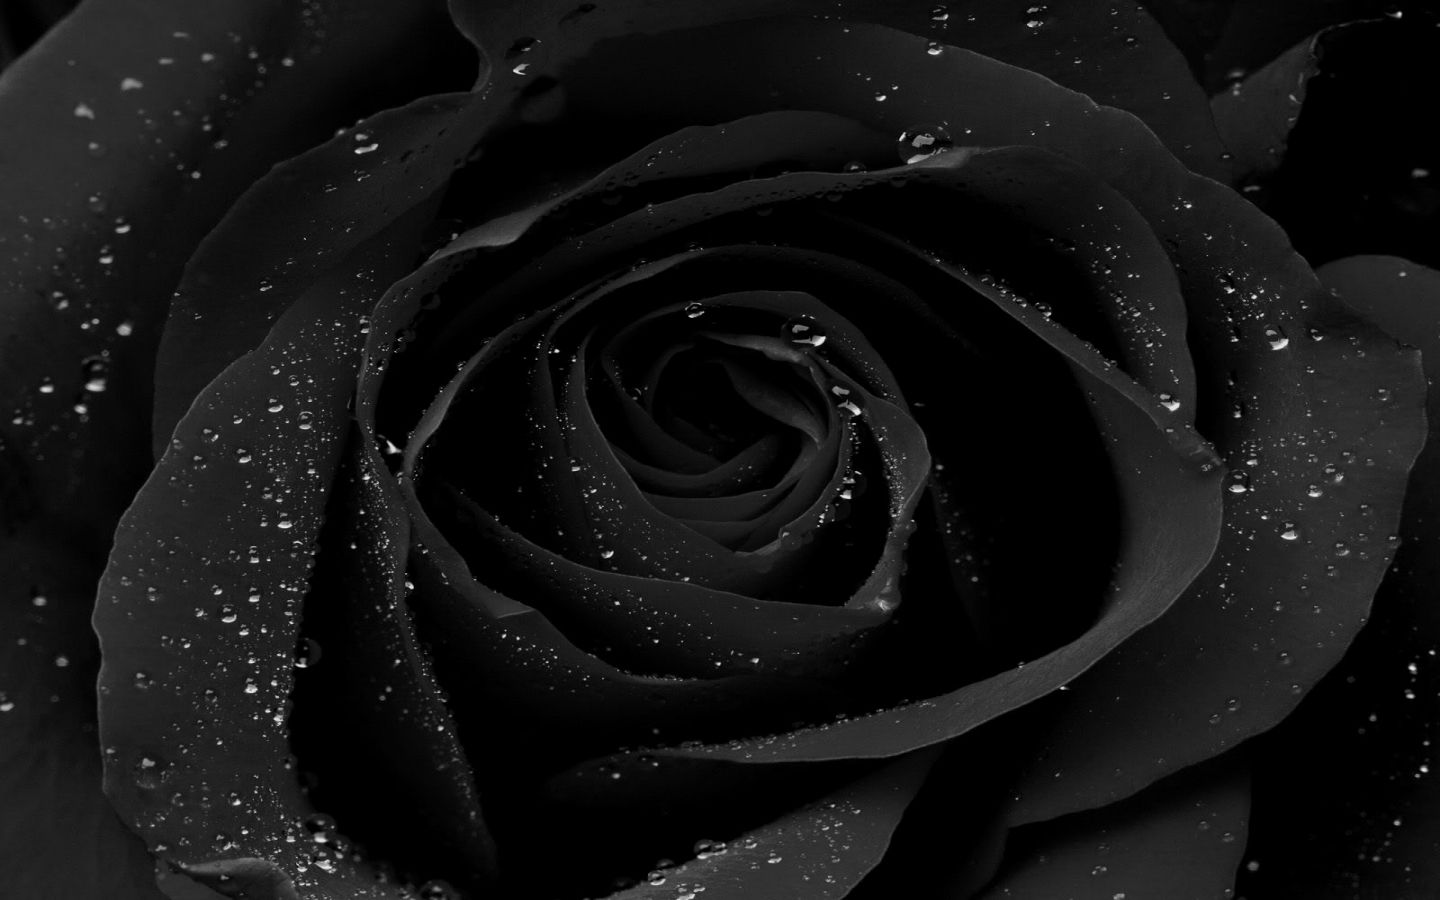 Black Rose HD Wallpapers HD Wallpapers